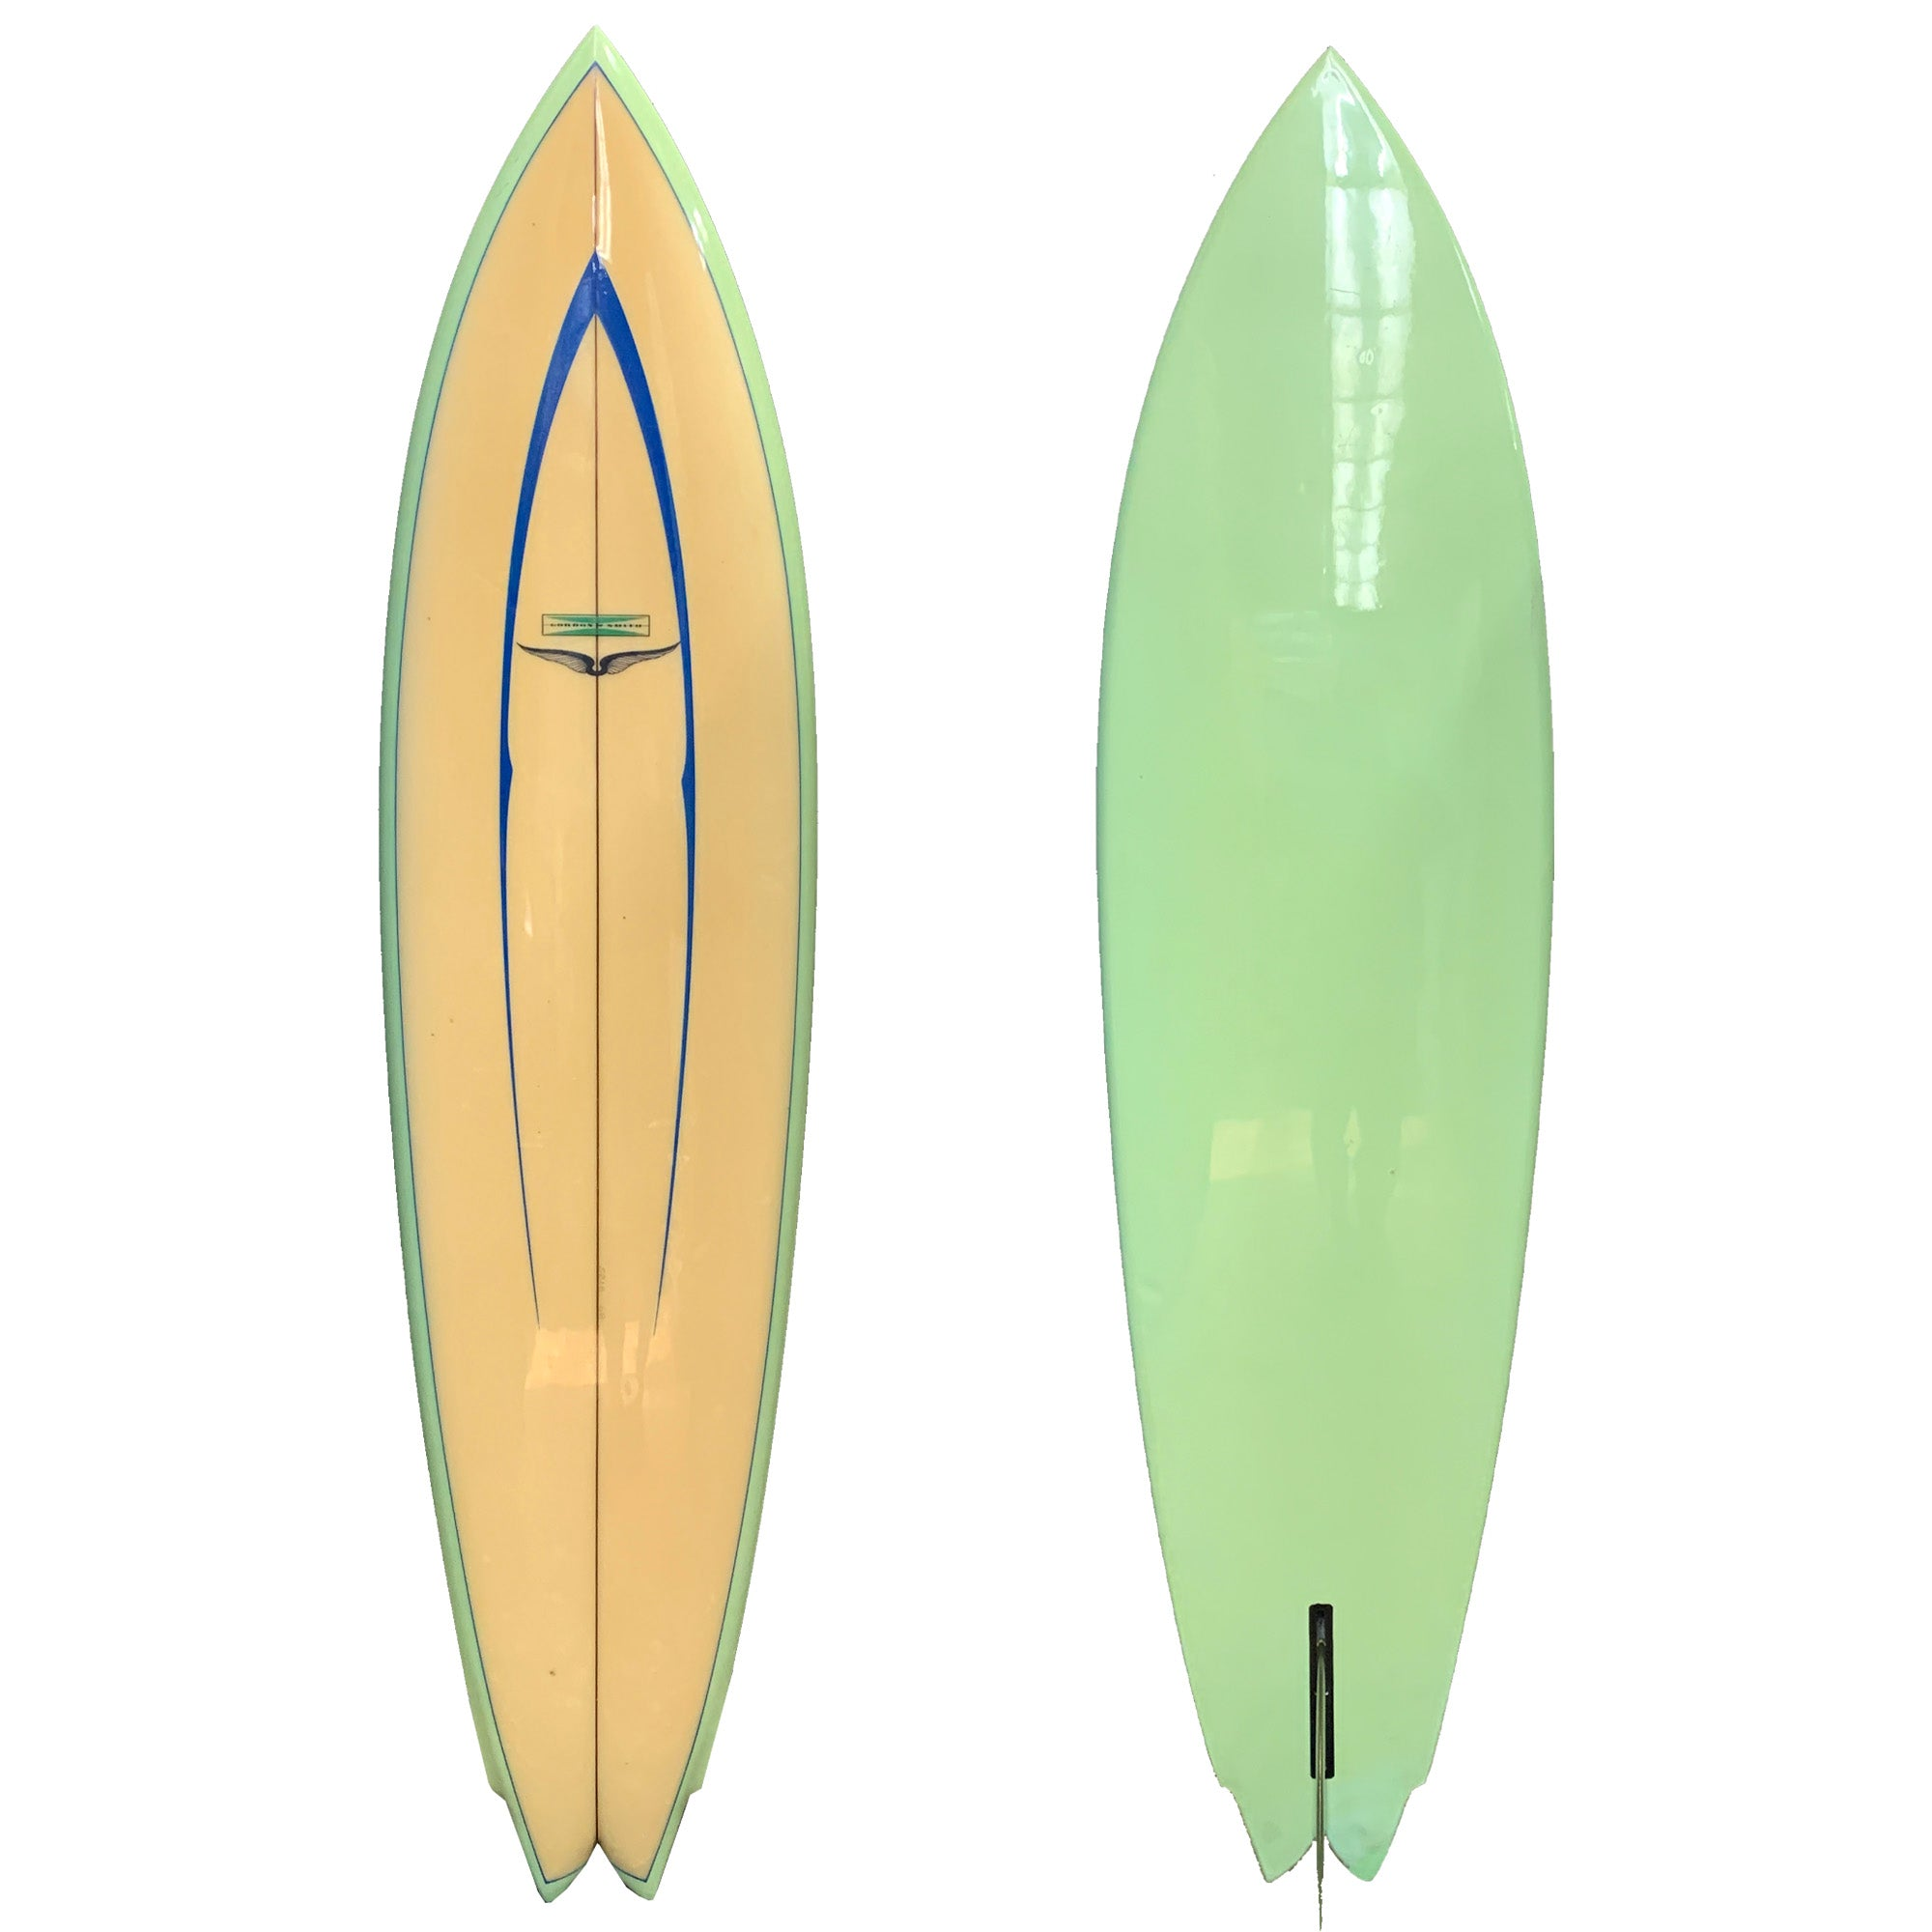 Gordon & Smith Skip Frye Model 6'8 Collector Surfboard